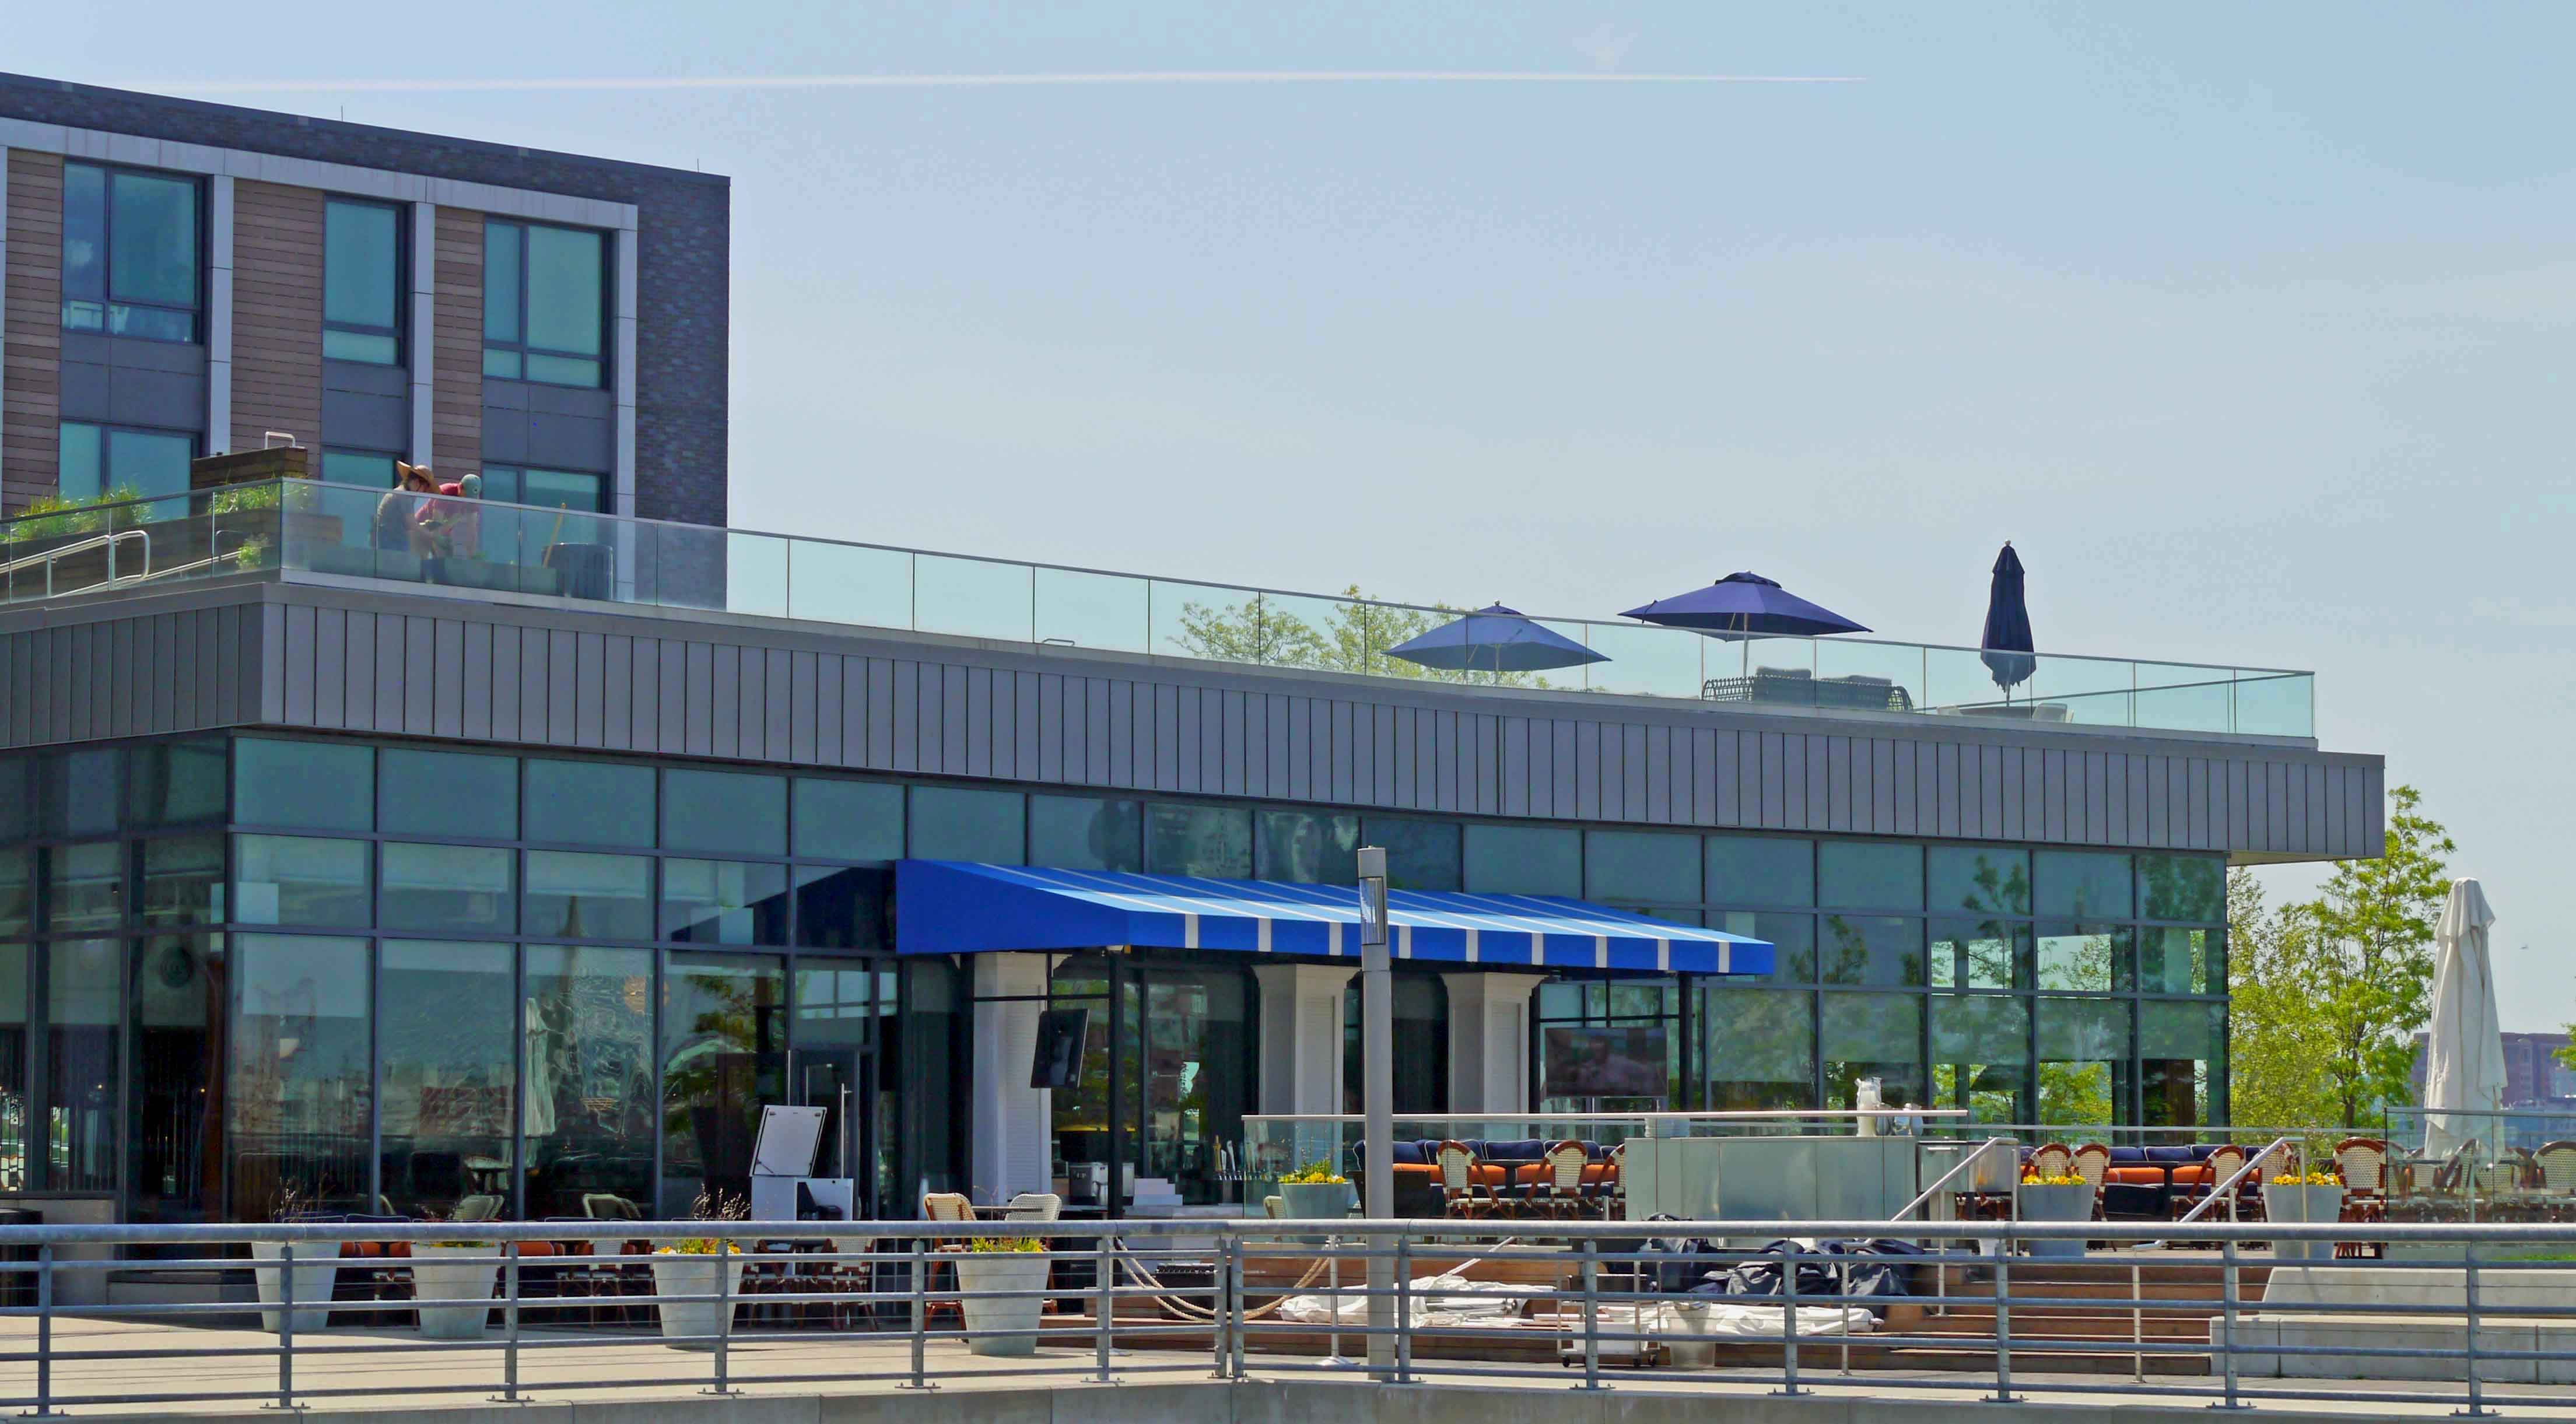 ReelHouse occupies a prime location on the East Boston waterfront, directly across from the Charlestown Piers.